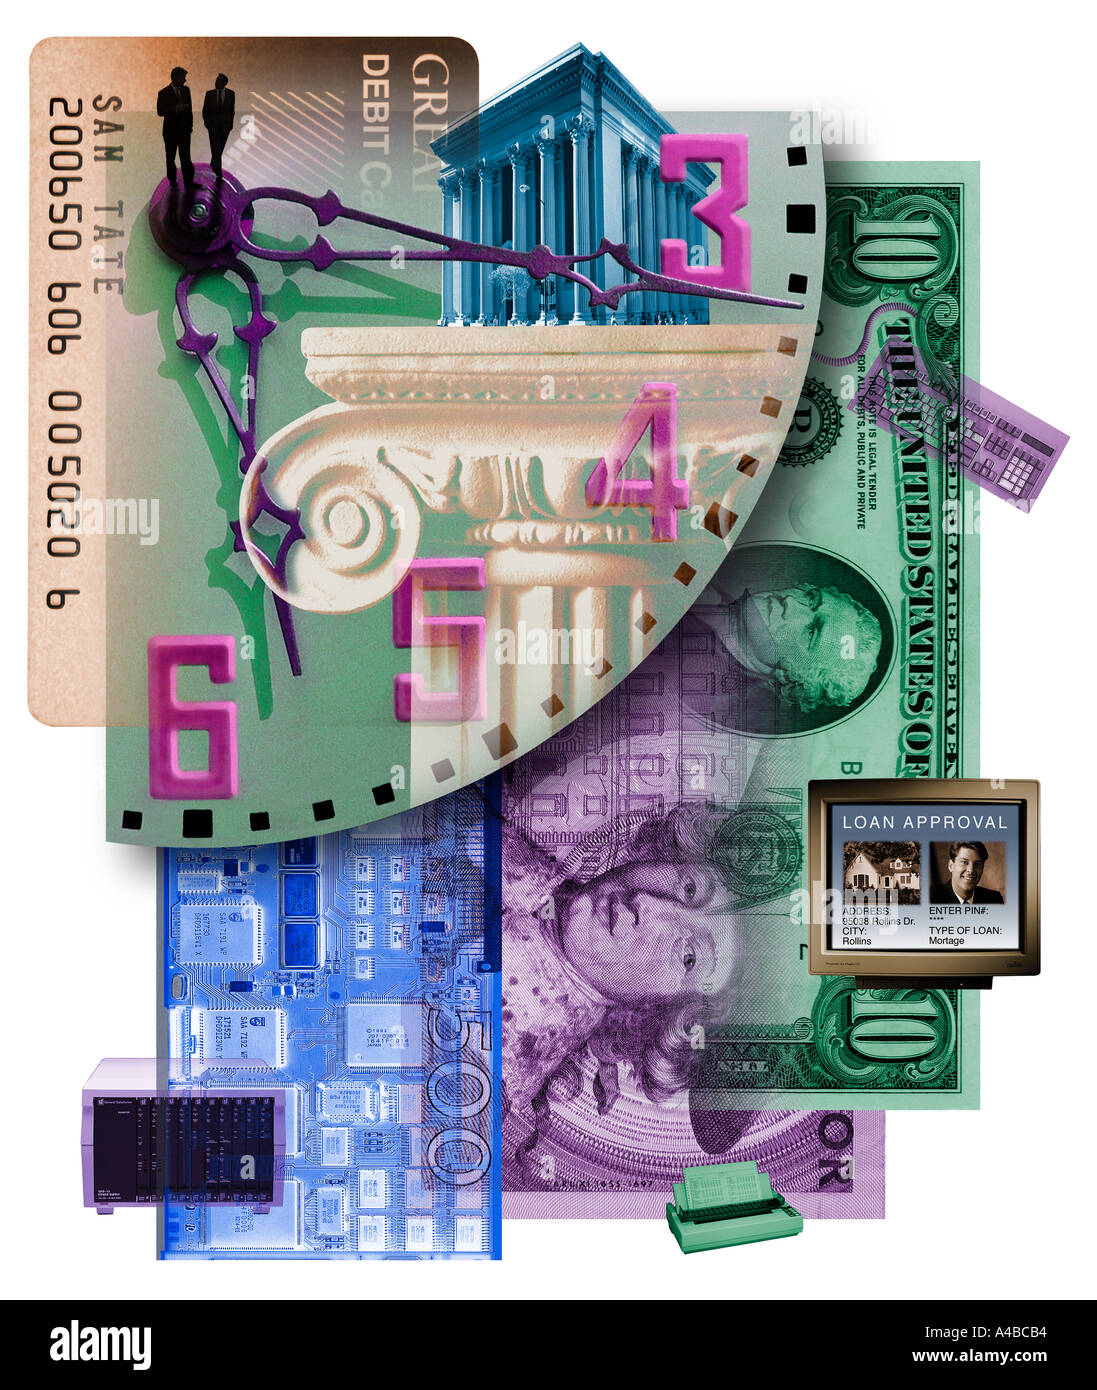 Banking and finance is the theme for this collage Currency atm s and information technology  - Stock Image